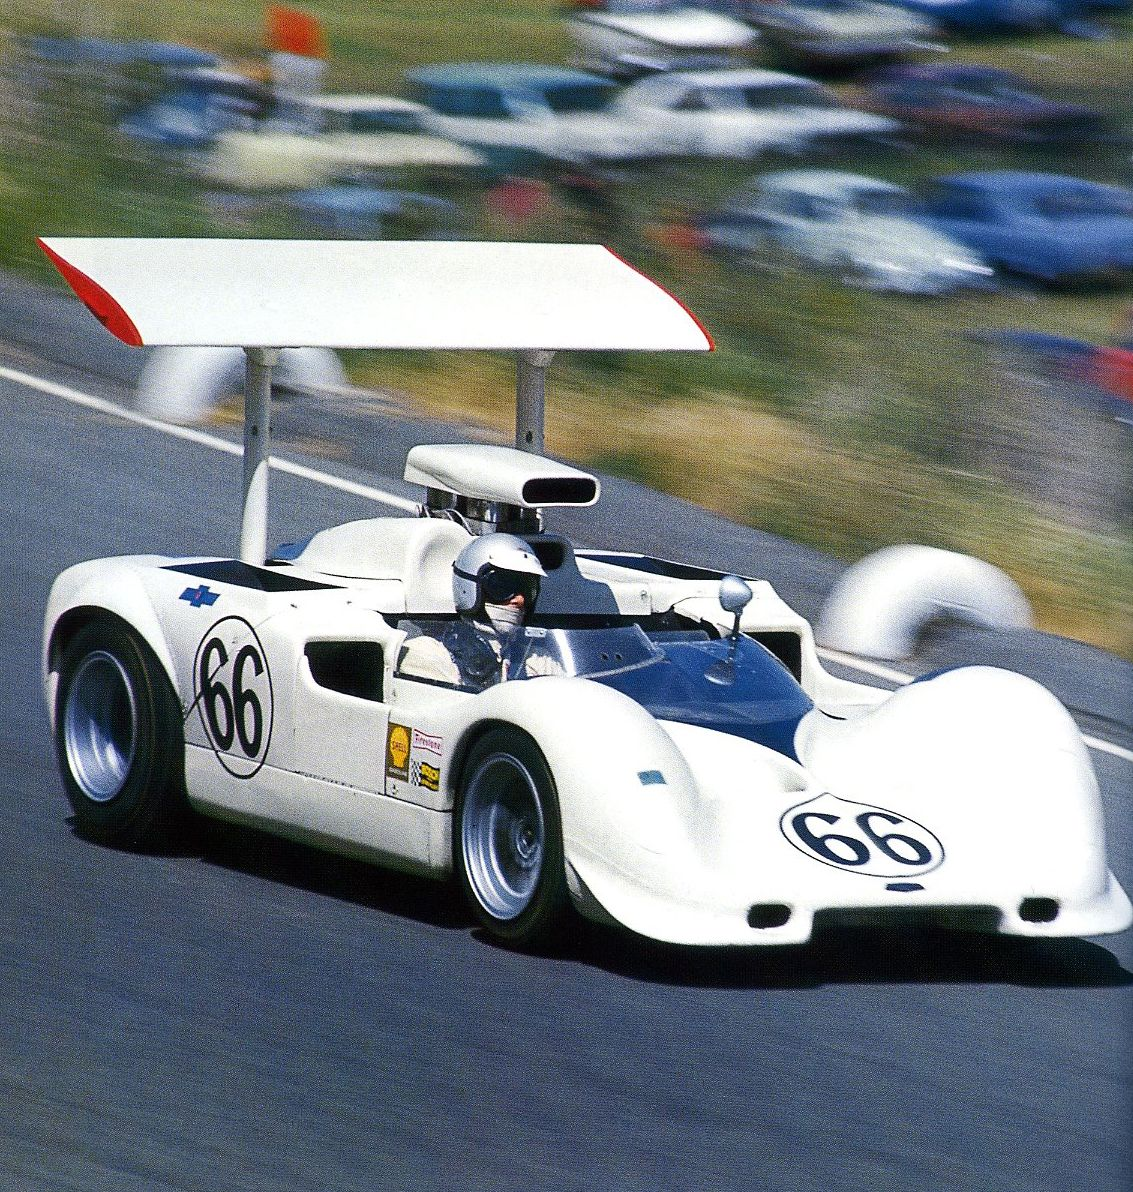 CAN AM RACING STARTED IN THE 1960'S AND FOUND ITS DEMISE